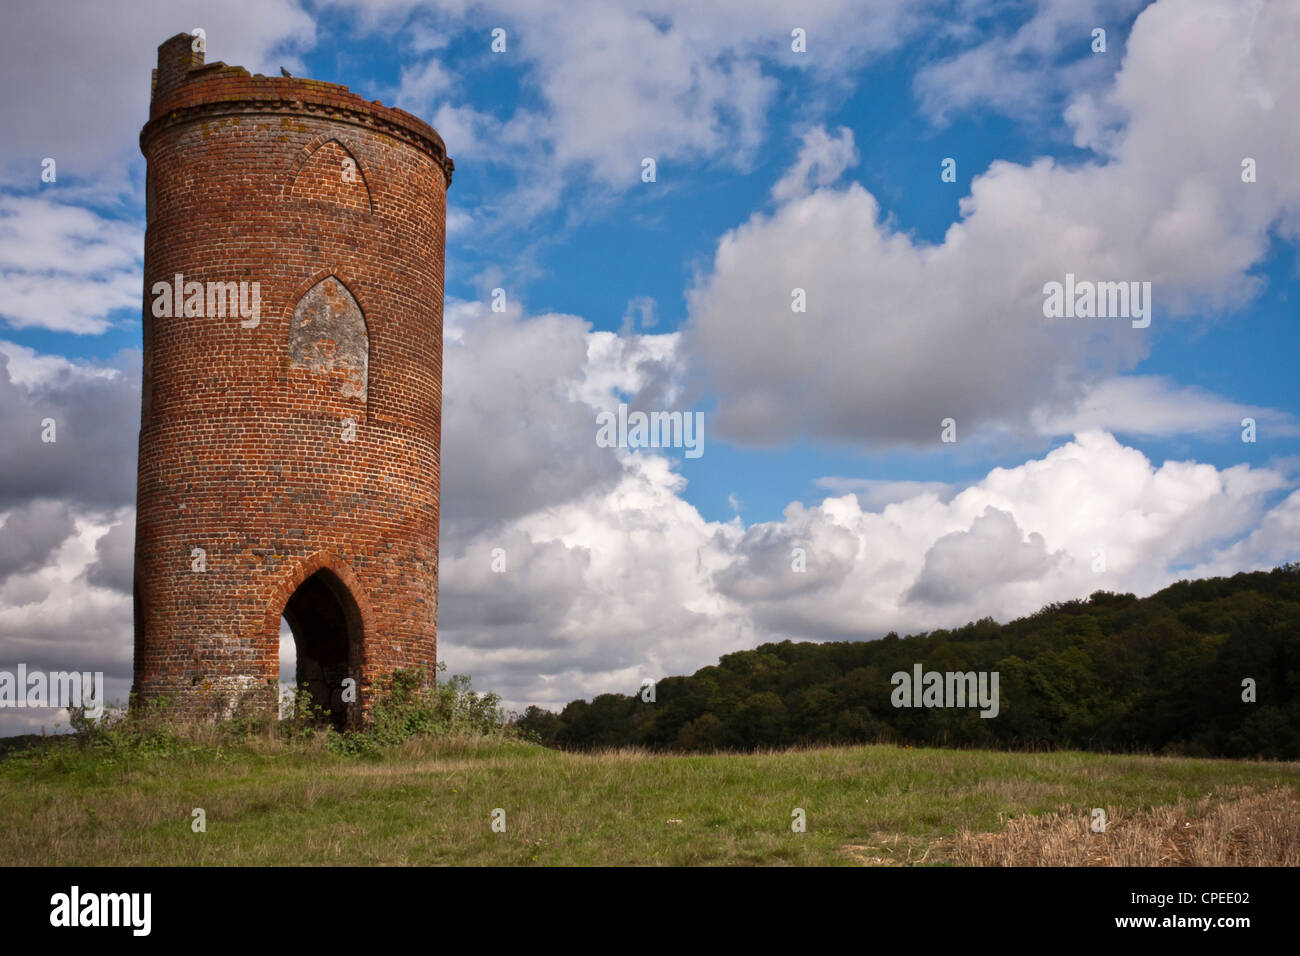 Wilder's Folly, Sulham, near Reading, Berkshire. - Stock Image